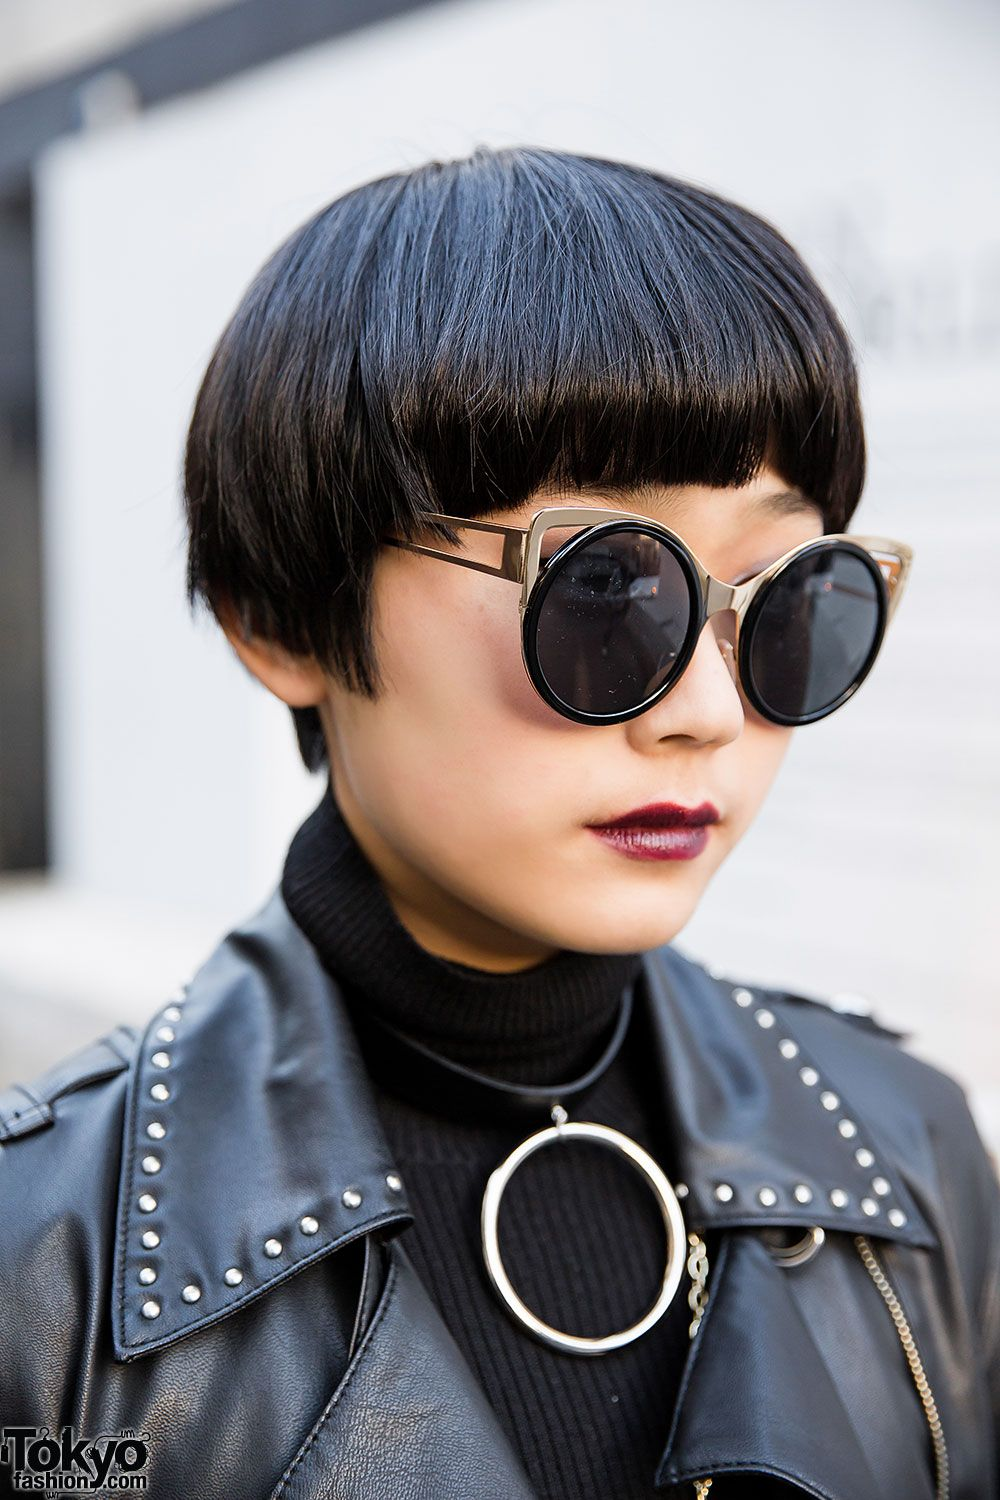 Short Japanese Hairstyle Sunglasses World Street Fashion